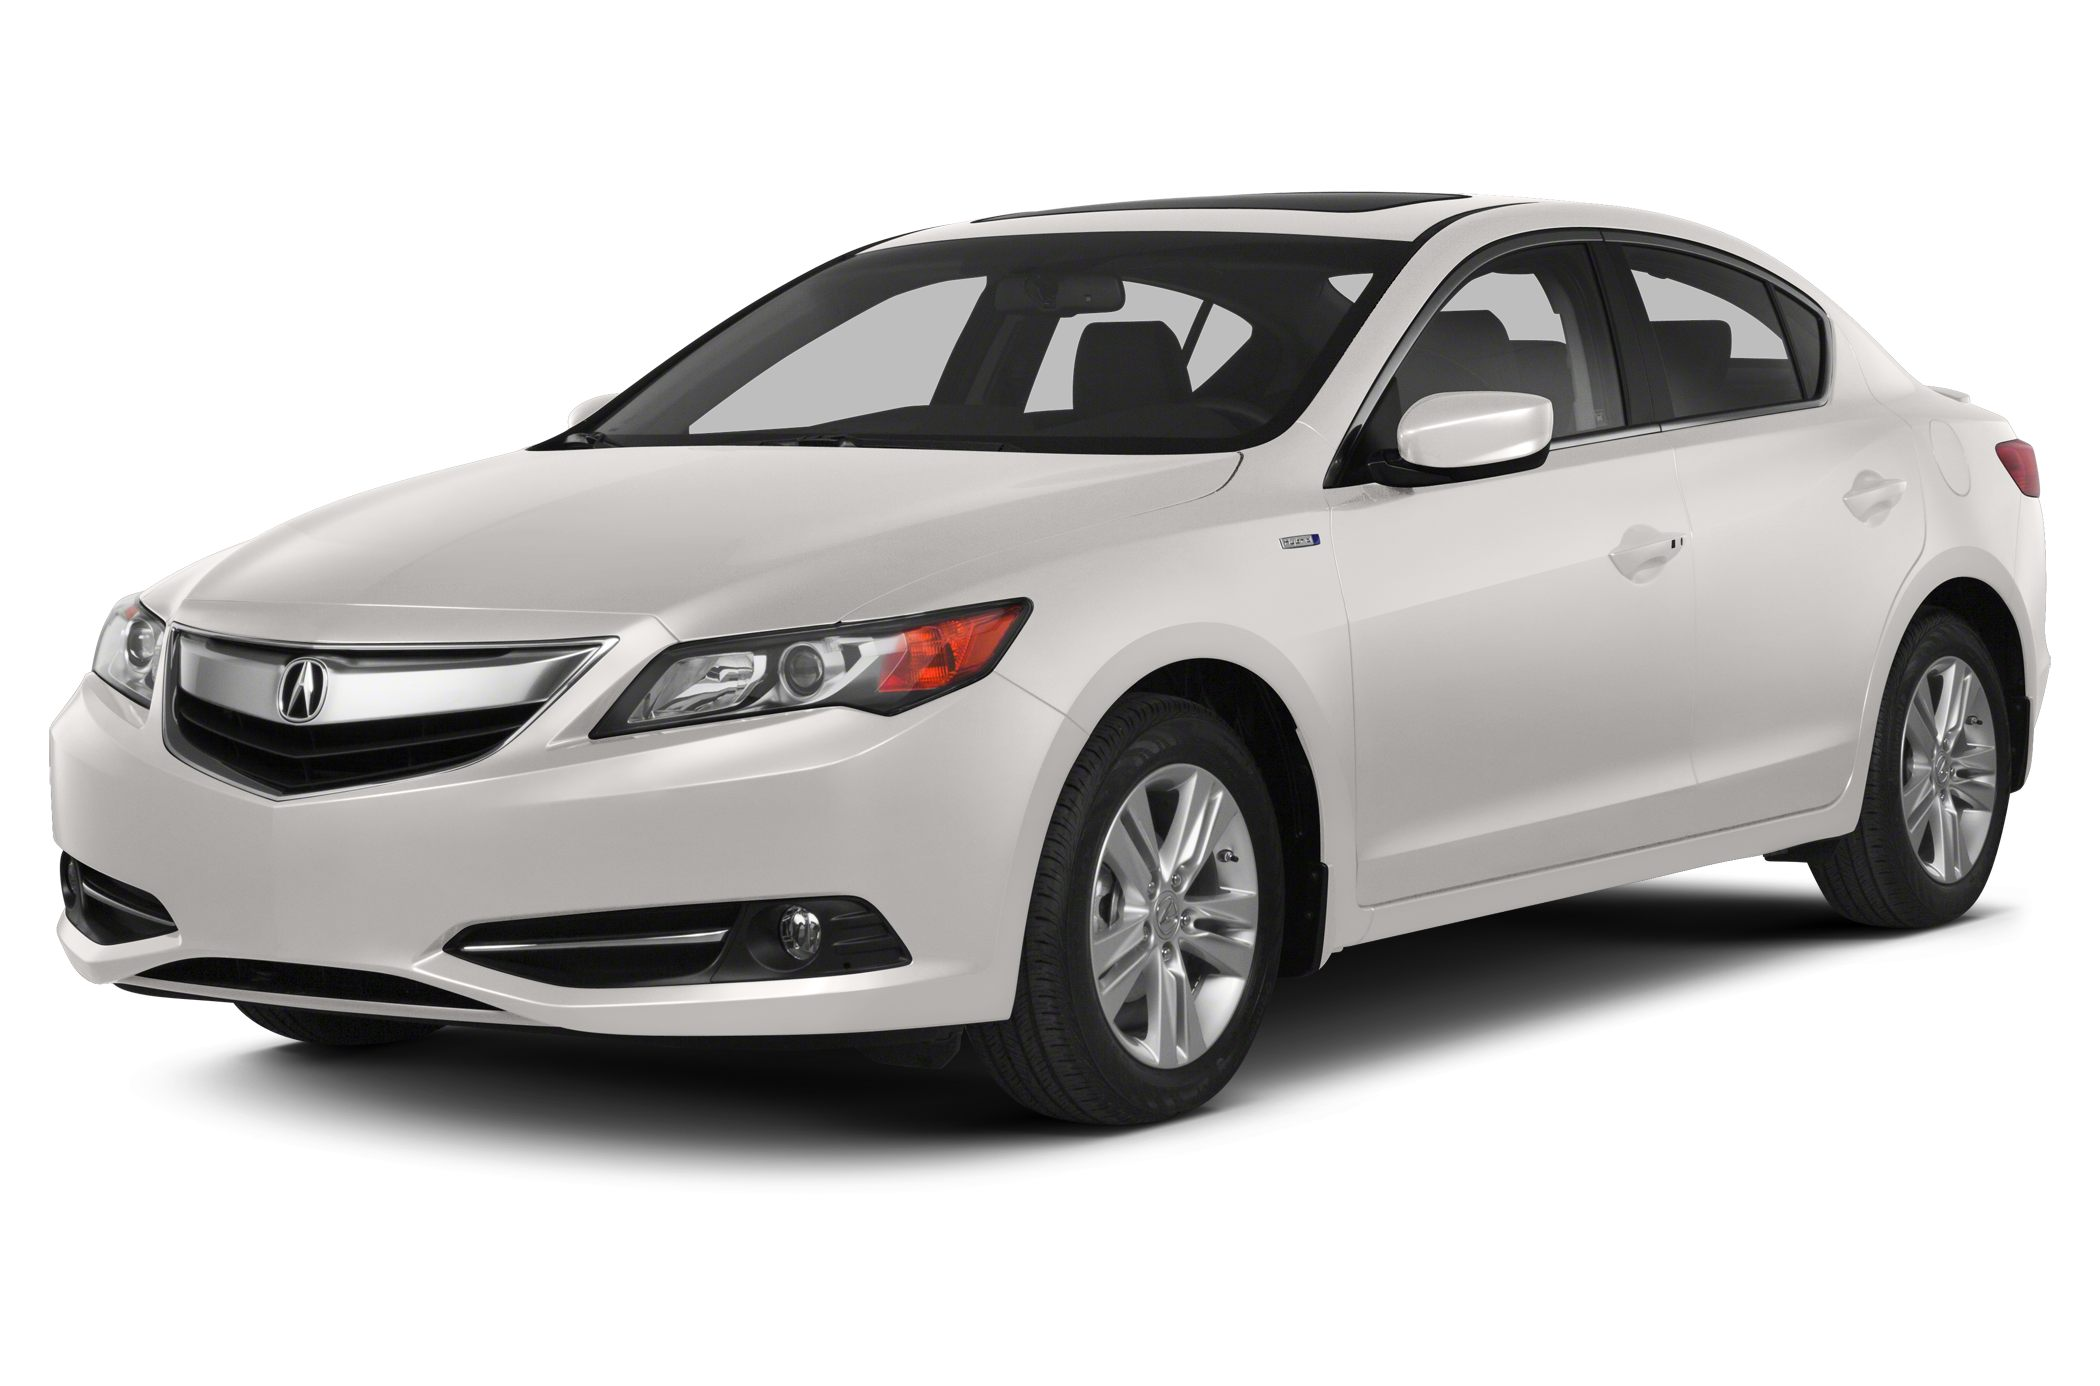 2013 Acura ILX Hybrid Technology This particular Acura Hybrid is absolutely gorgeous Outfitted in